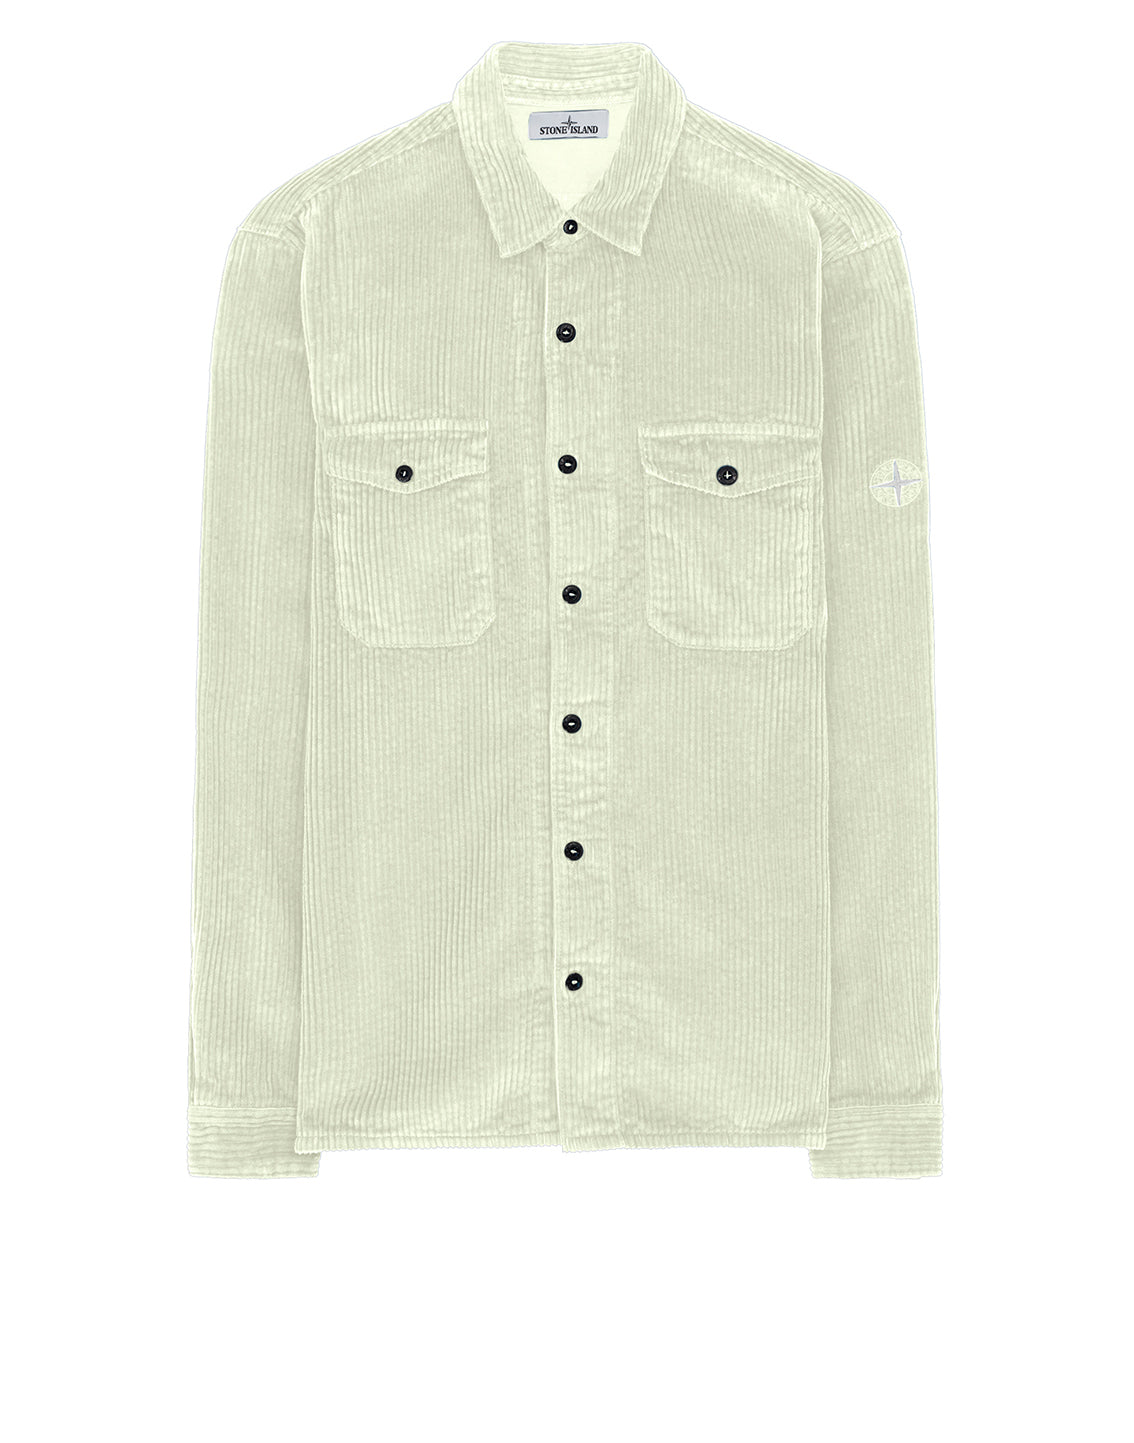 12111 Long Sleeve Shirt in Butter